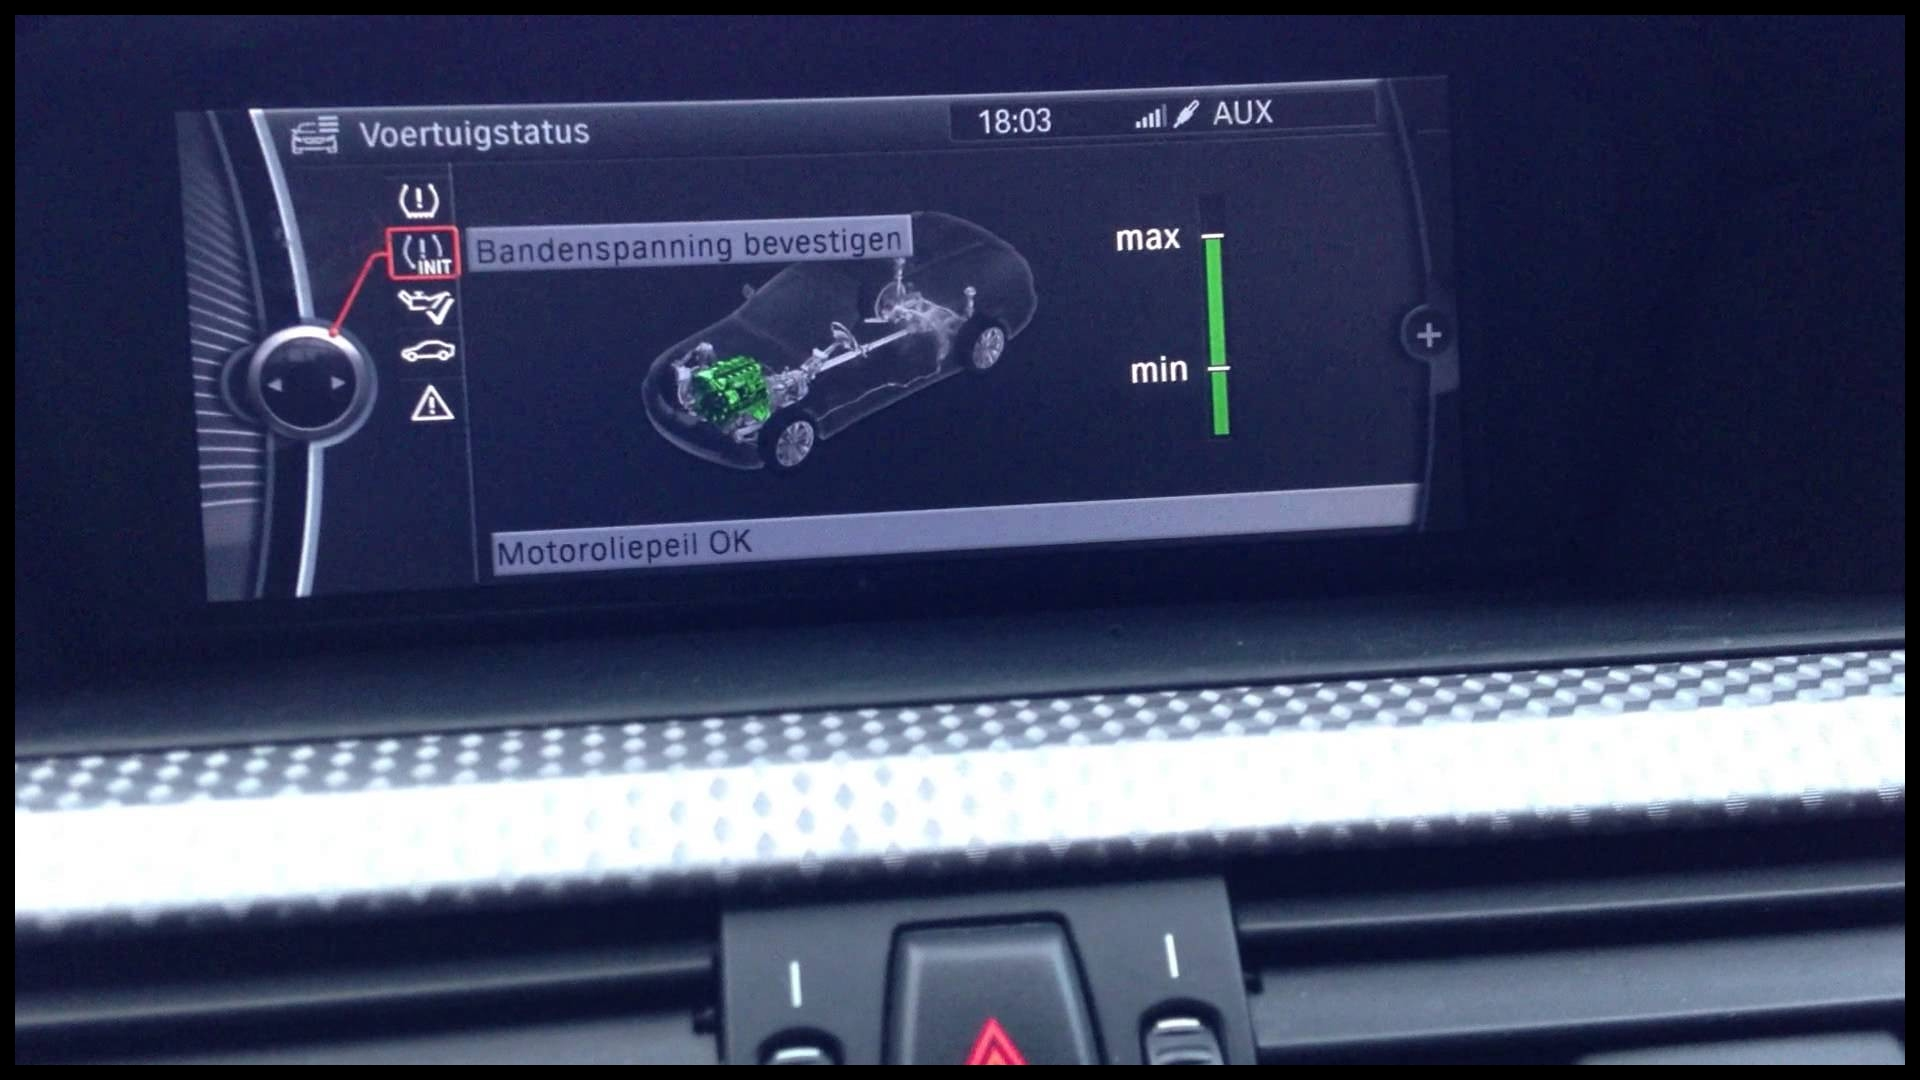 Bmw Idrive software Update 2017 Lovely Installation New Bmw Cic Navi Instead the Old Bmw